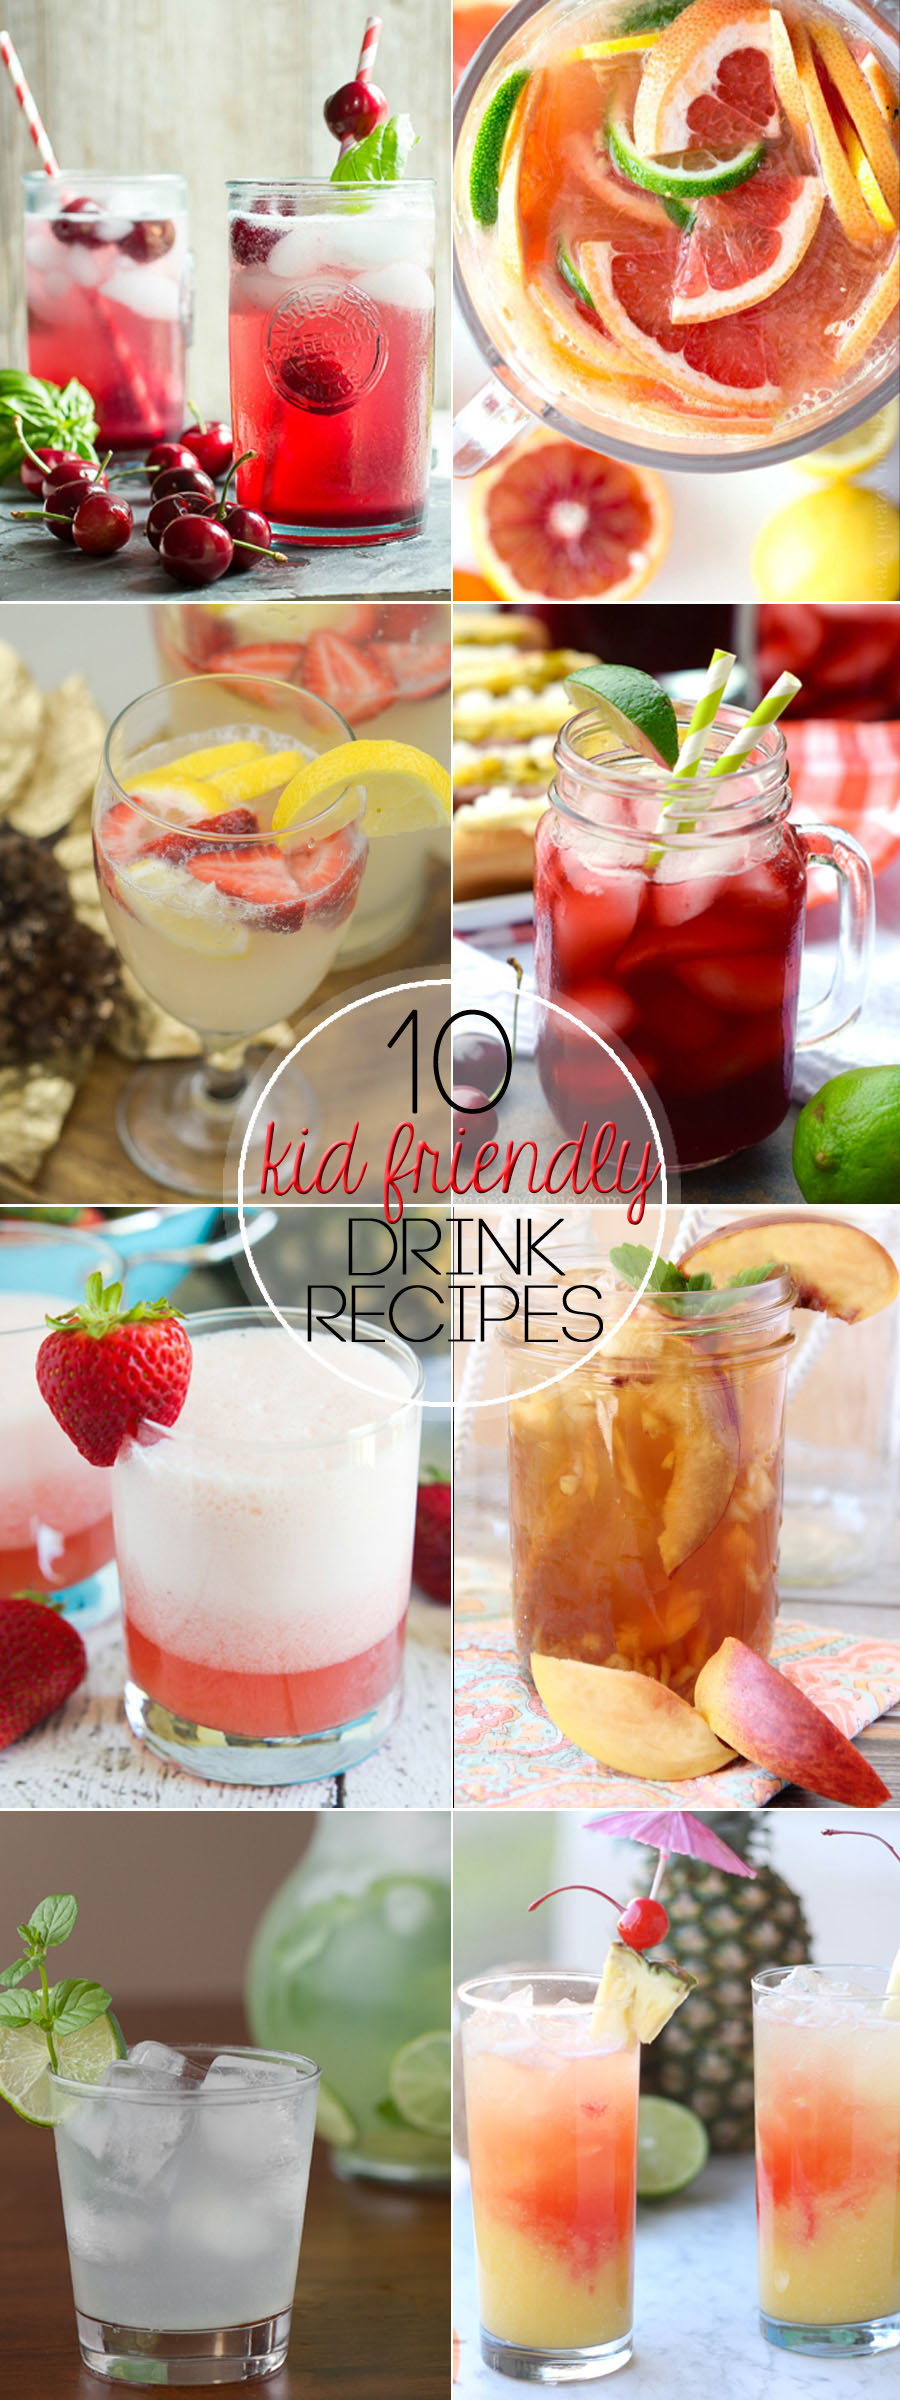 10 Kid Friendly Drinks